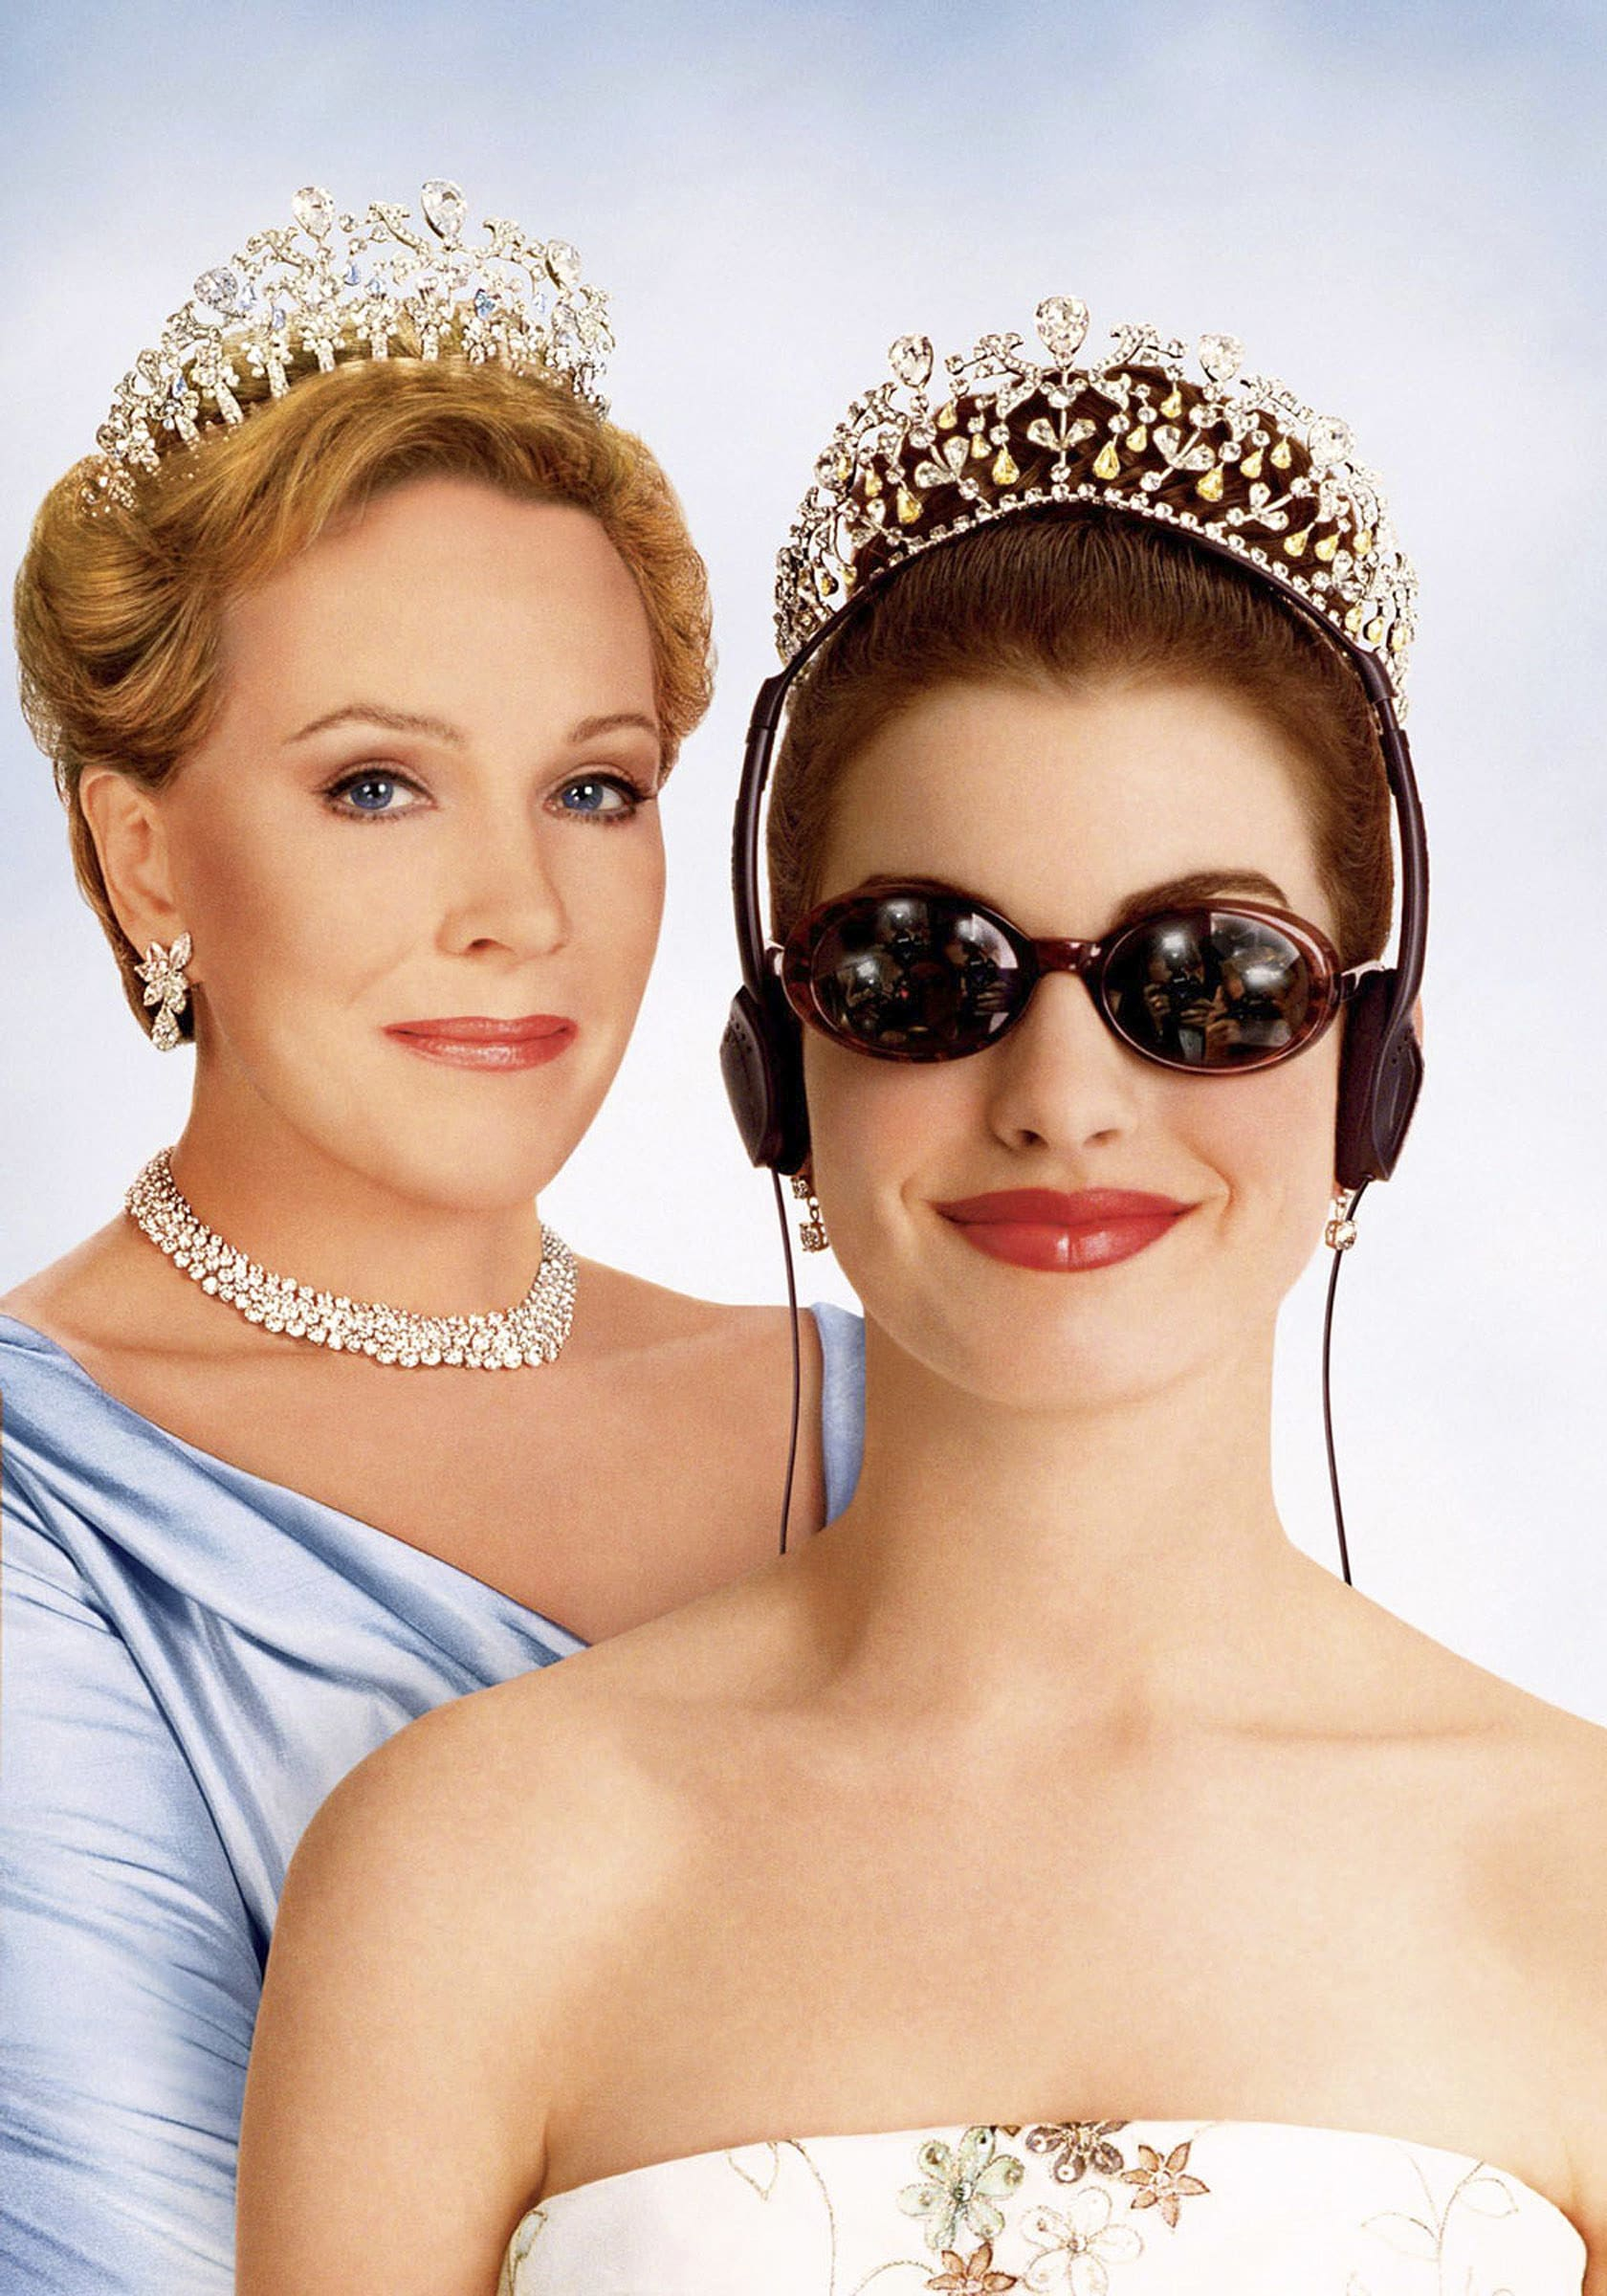 Julie Andrews as the Queen and Anne Hathaway as the princess, with headphones and sunglasses on